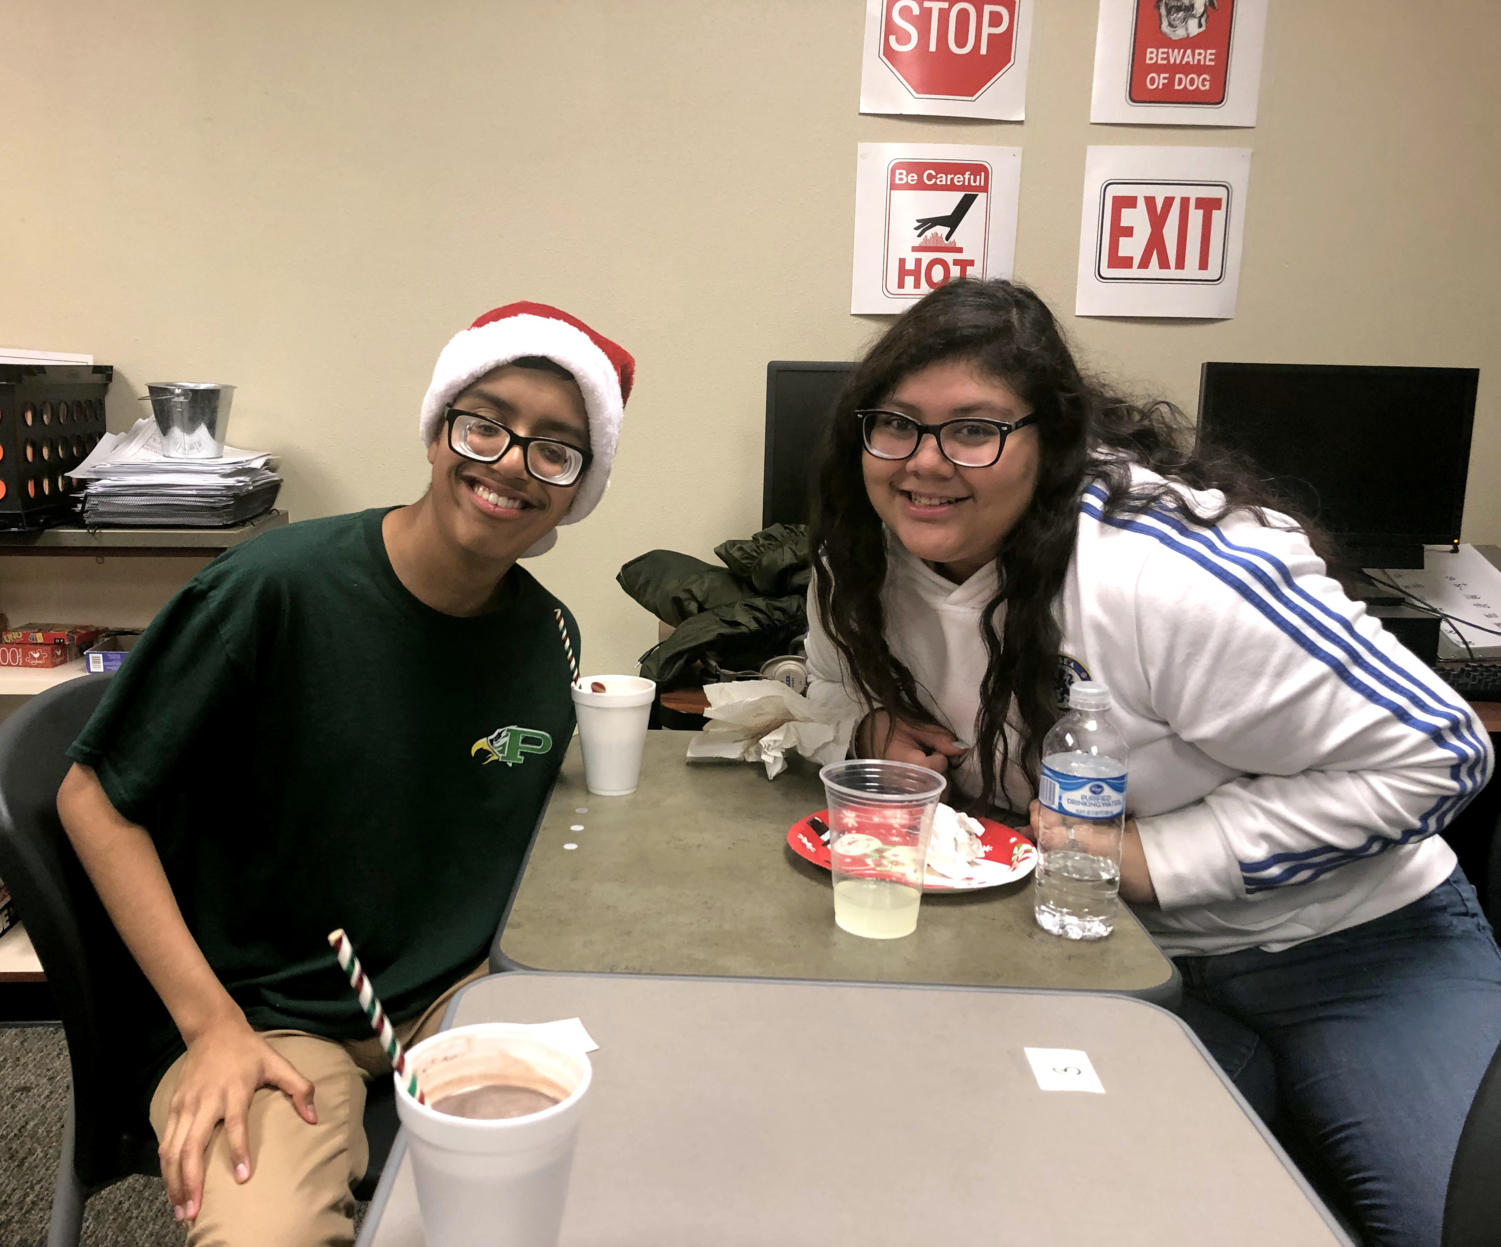 """Two buddies, Antonio Servin and Chelsea Monterrosa, enjoy the annual Best Buddies holiday party. This is the organization's first year at Prosper. """"The fundraising will go towards keeping our chapter afloat,"""" treasurer and sophomore Morgan Begley said. """"It will go towards regional offices, and allow all parts of the organization to keep working."""""""